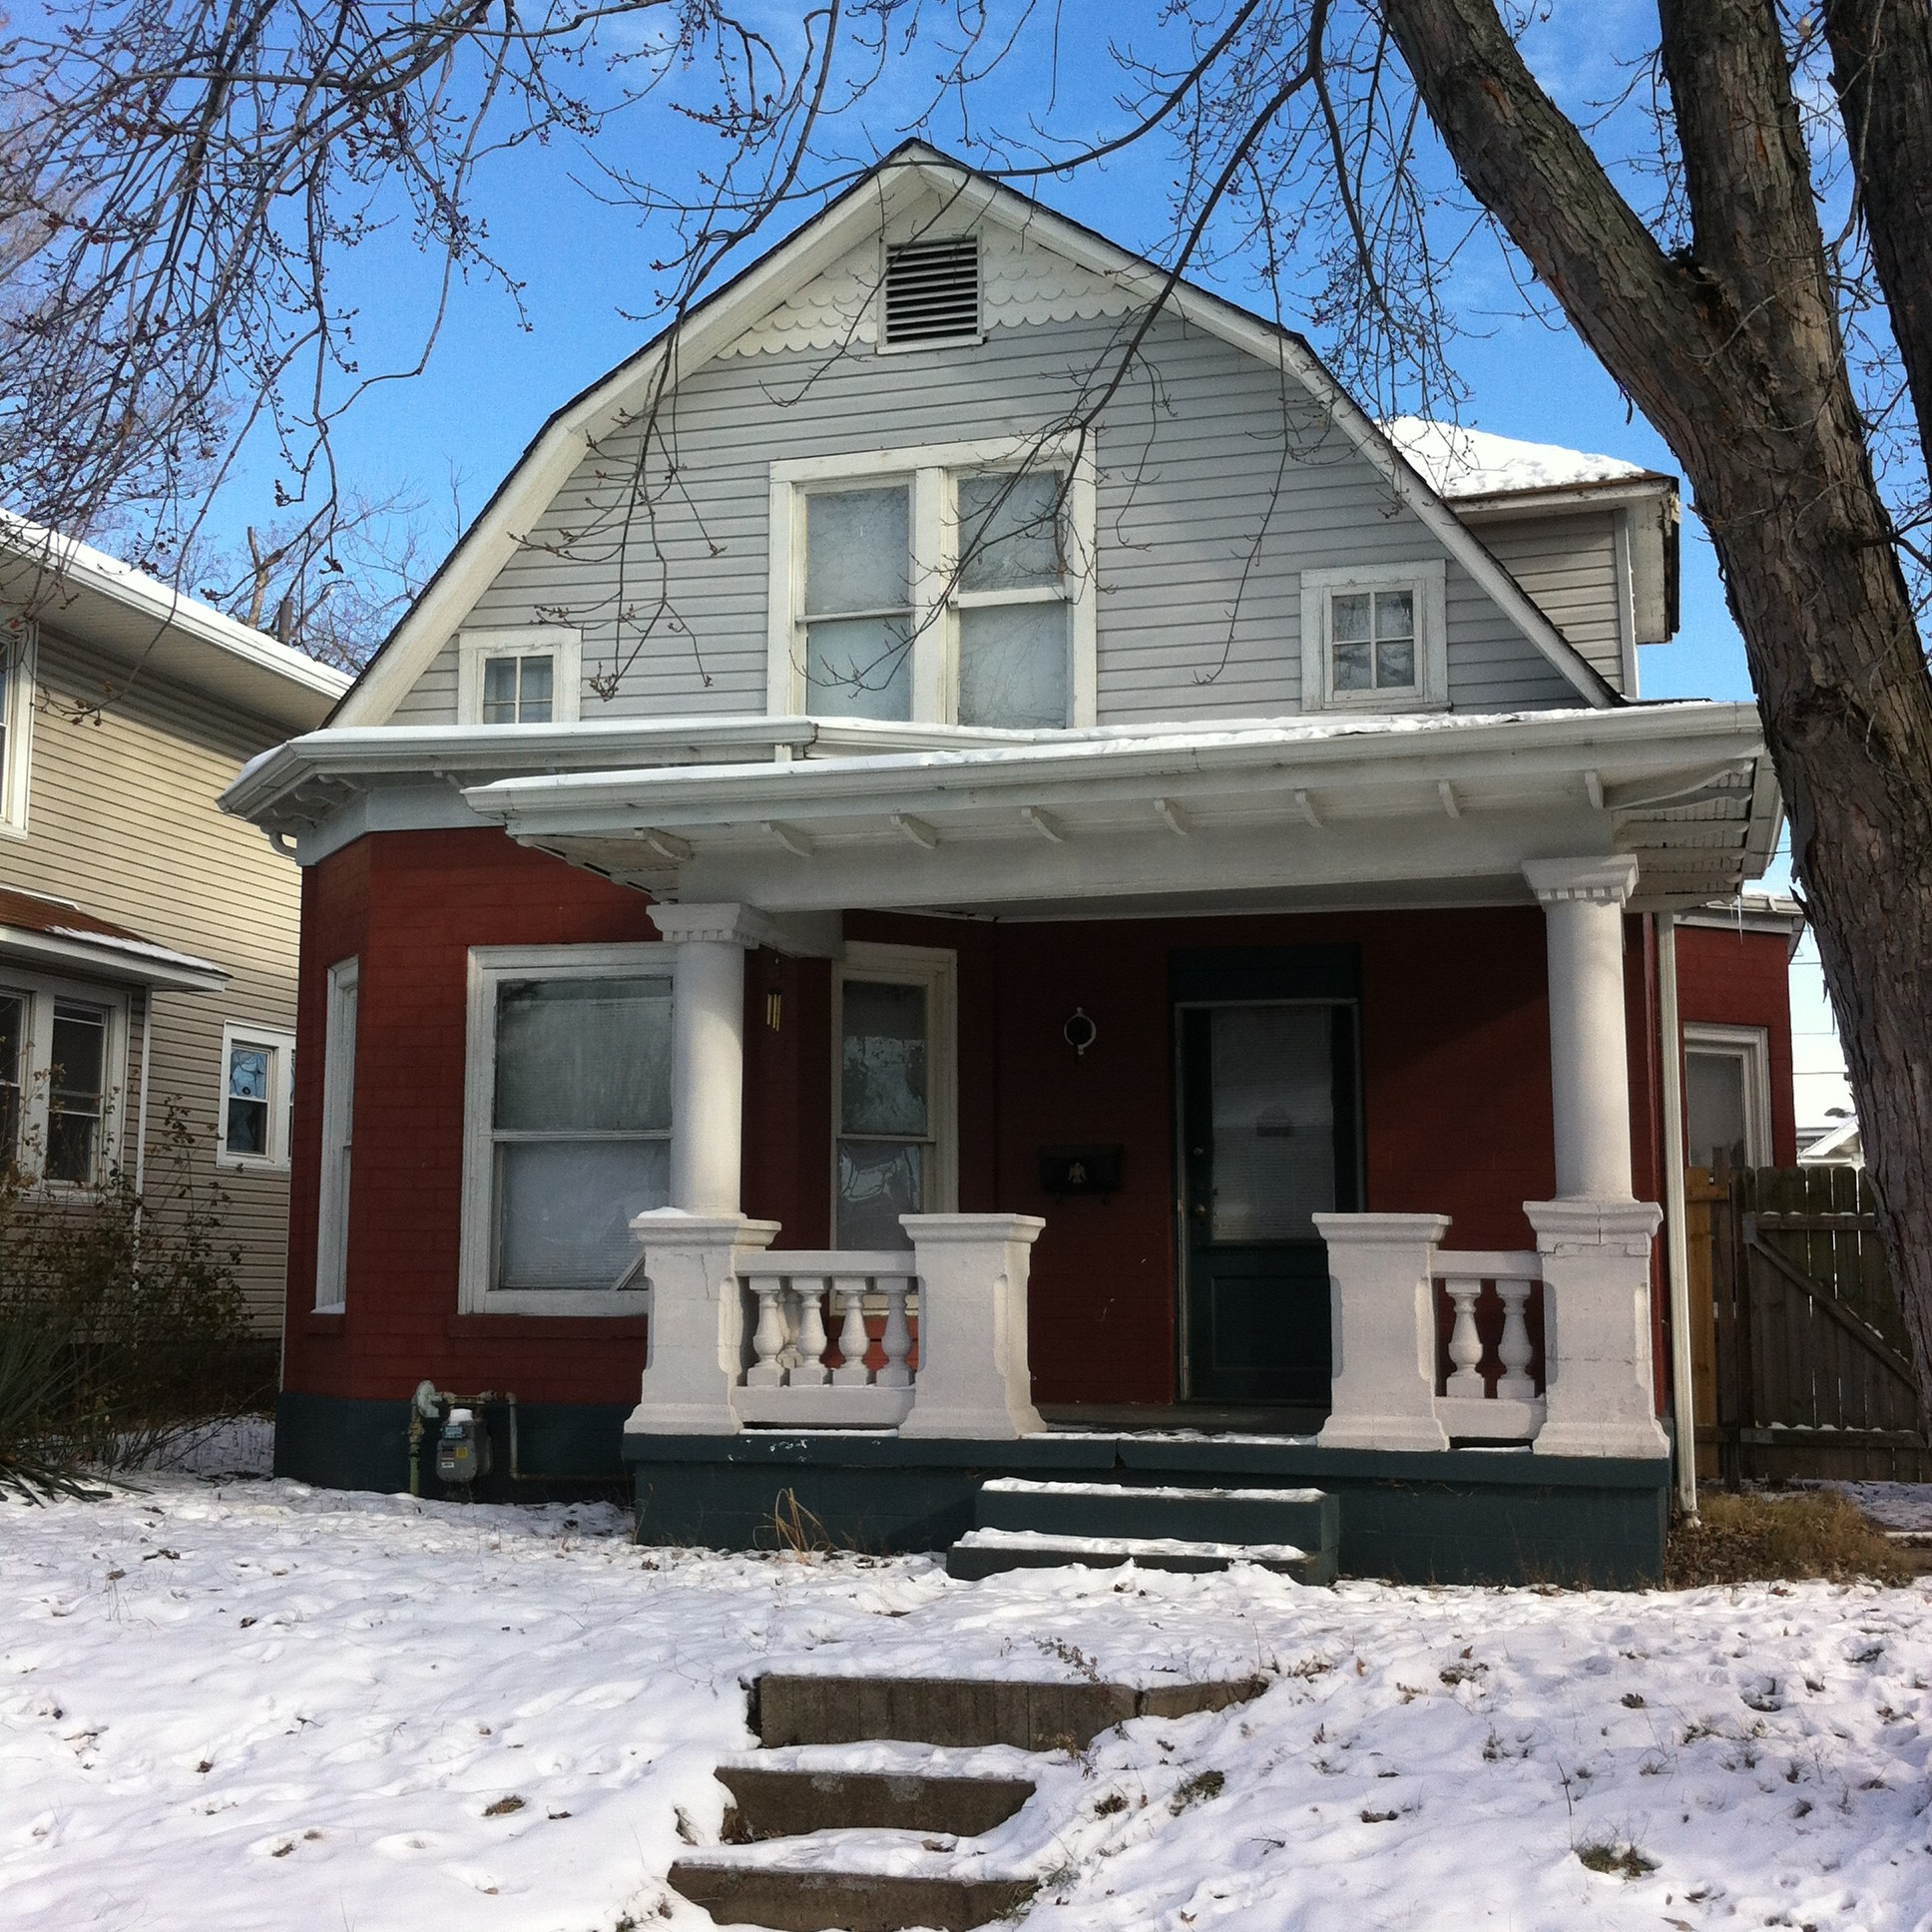 Website For Houses For Rent: Englewood Community Development Corporation